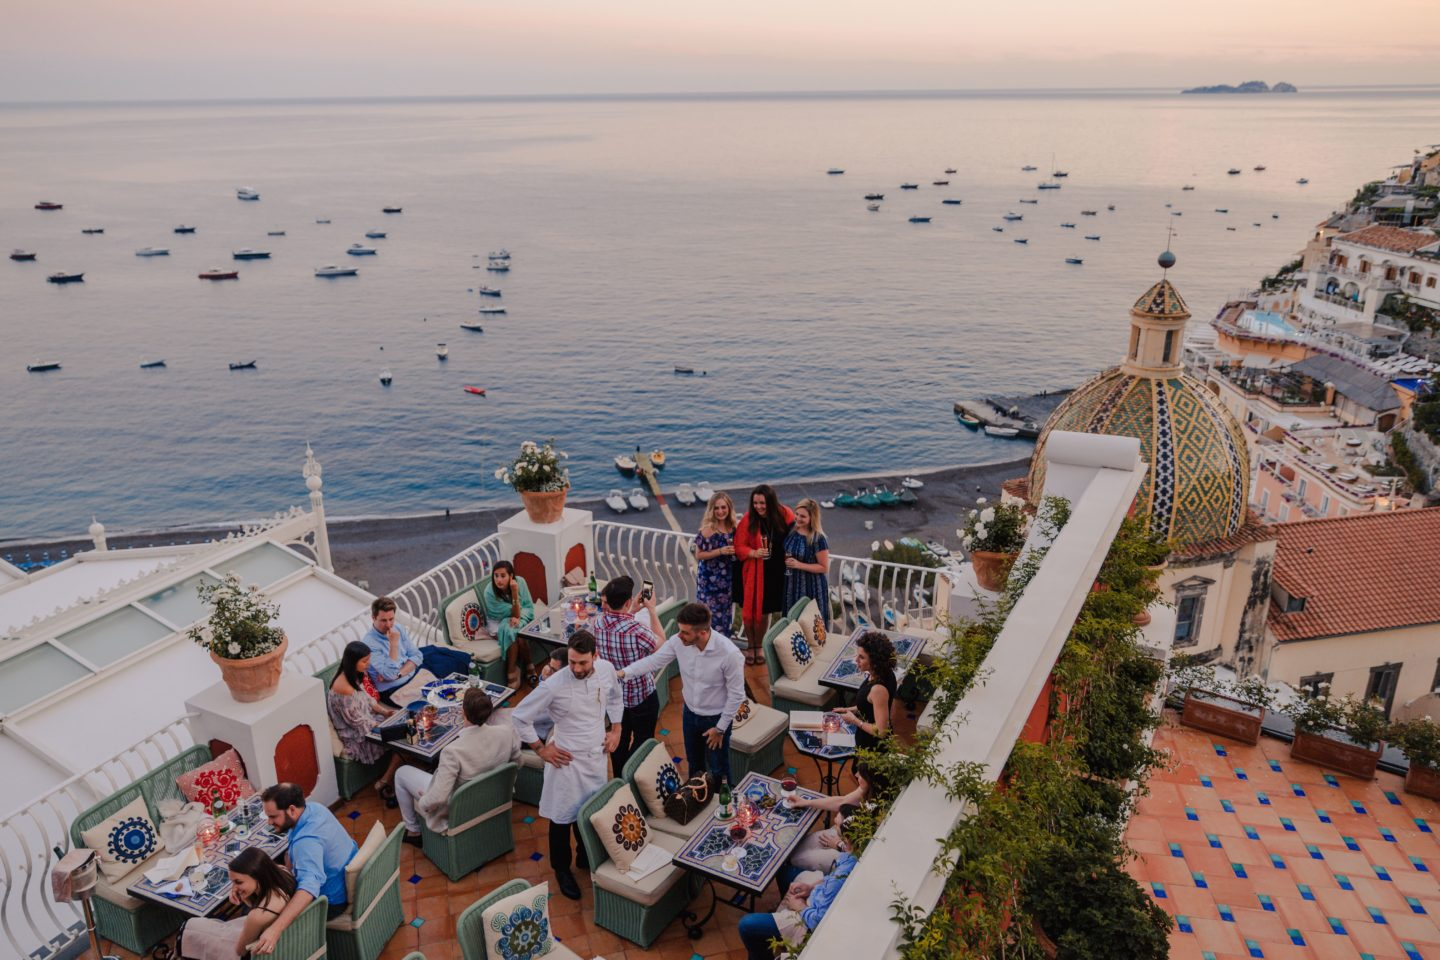 The Best Positano Instagram Shots | 12 Beautiful Shots You Can't Miss: Franco's Bar Le Sirenuse